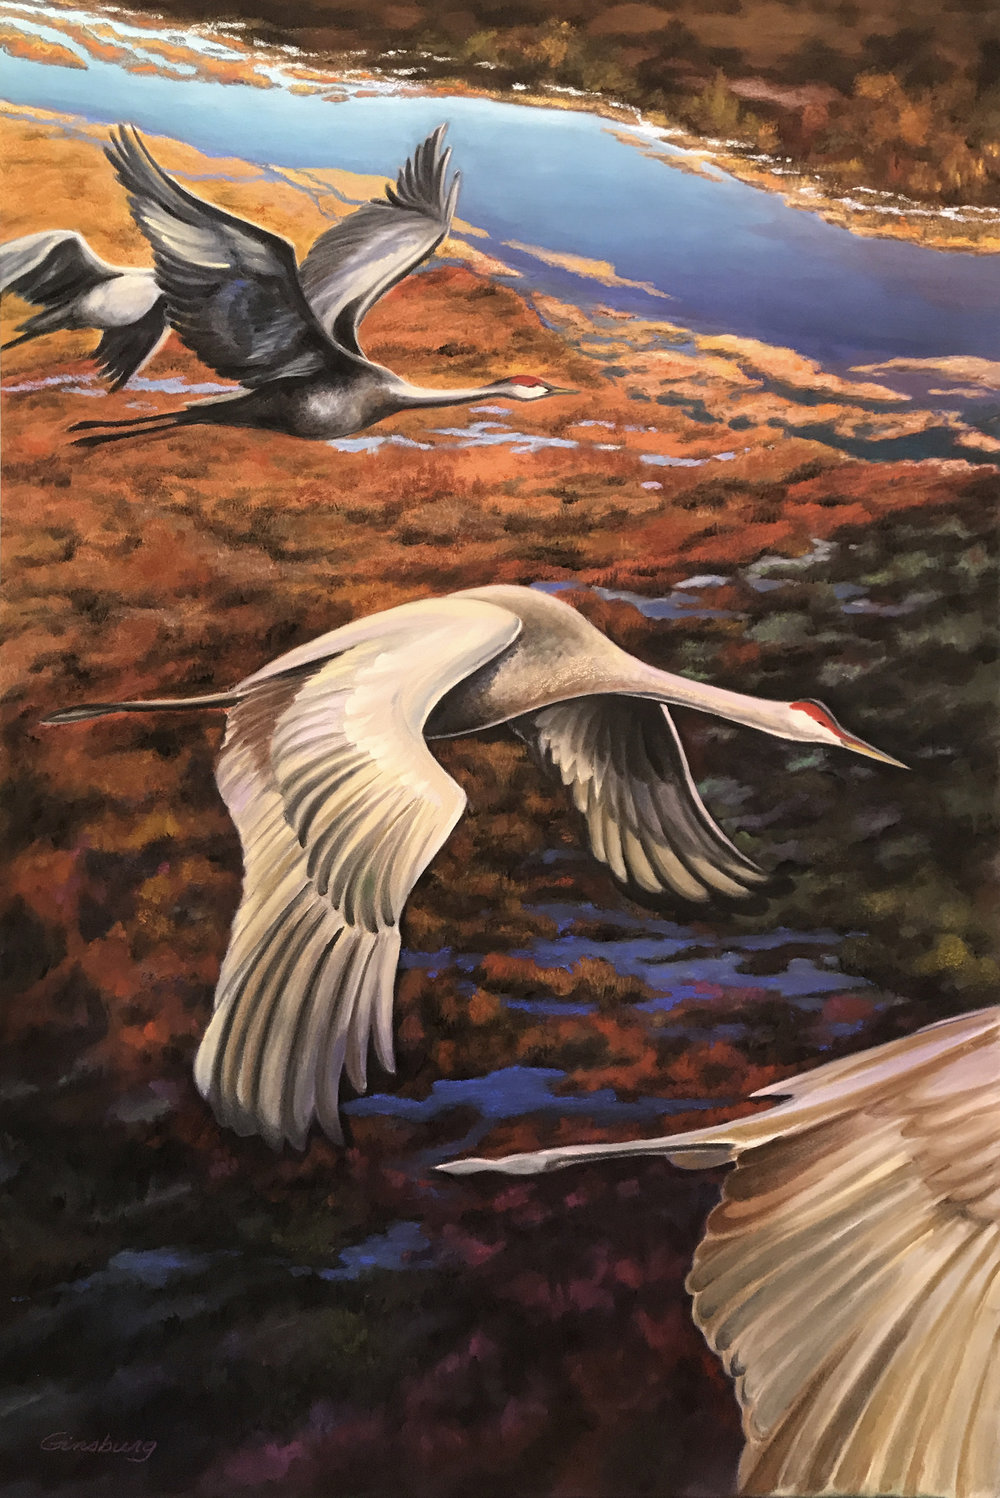 """WINGS OVER THE PLATTE""  PanPastel©  24"" x 36""  Cheri Ginsburg©  Juried selection ""Wings Over The Platte"" Exhibition, Stuhr Museum, Grand Island, NE 2018"